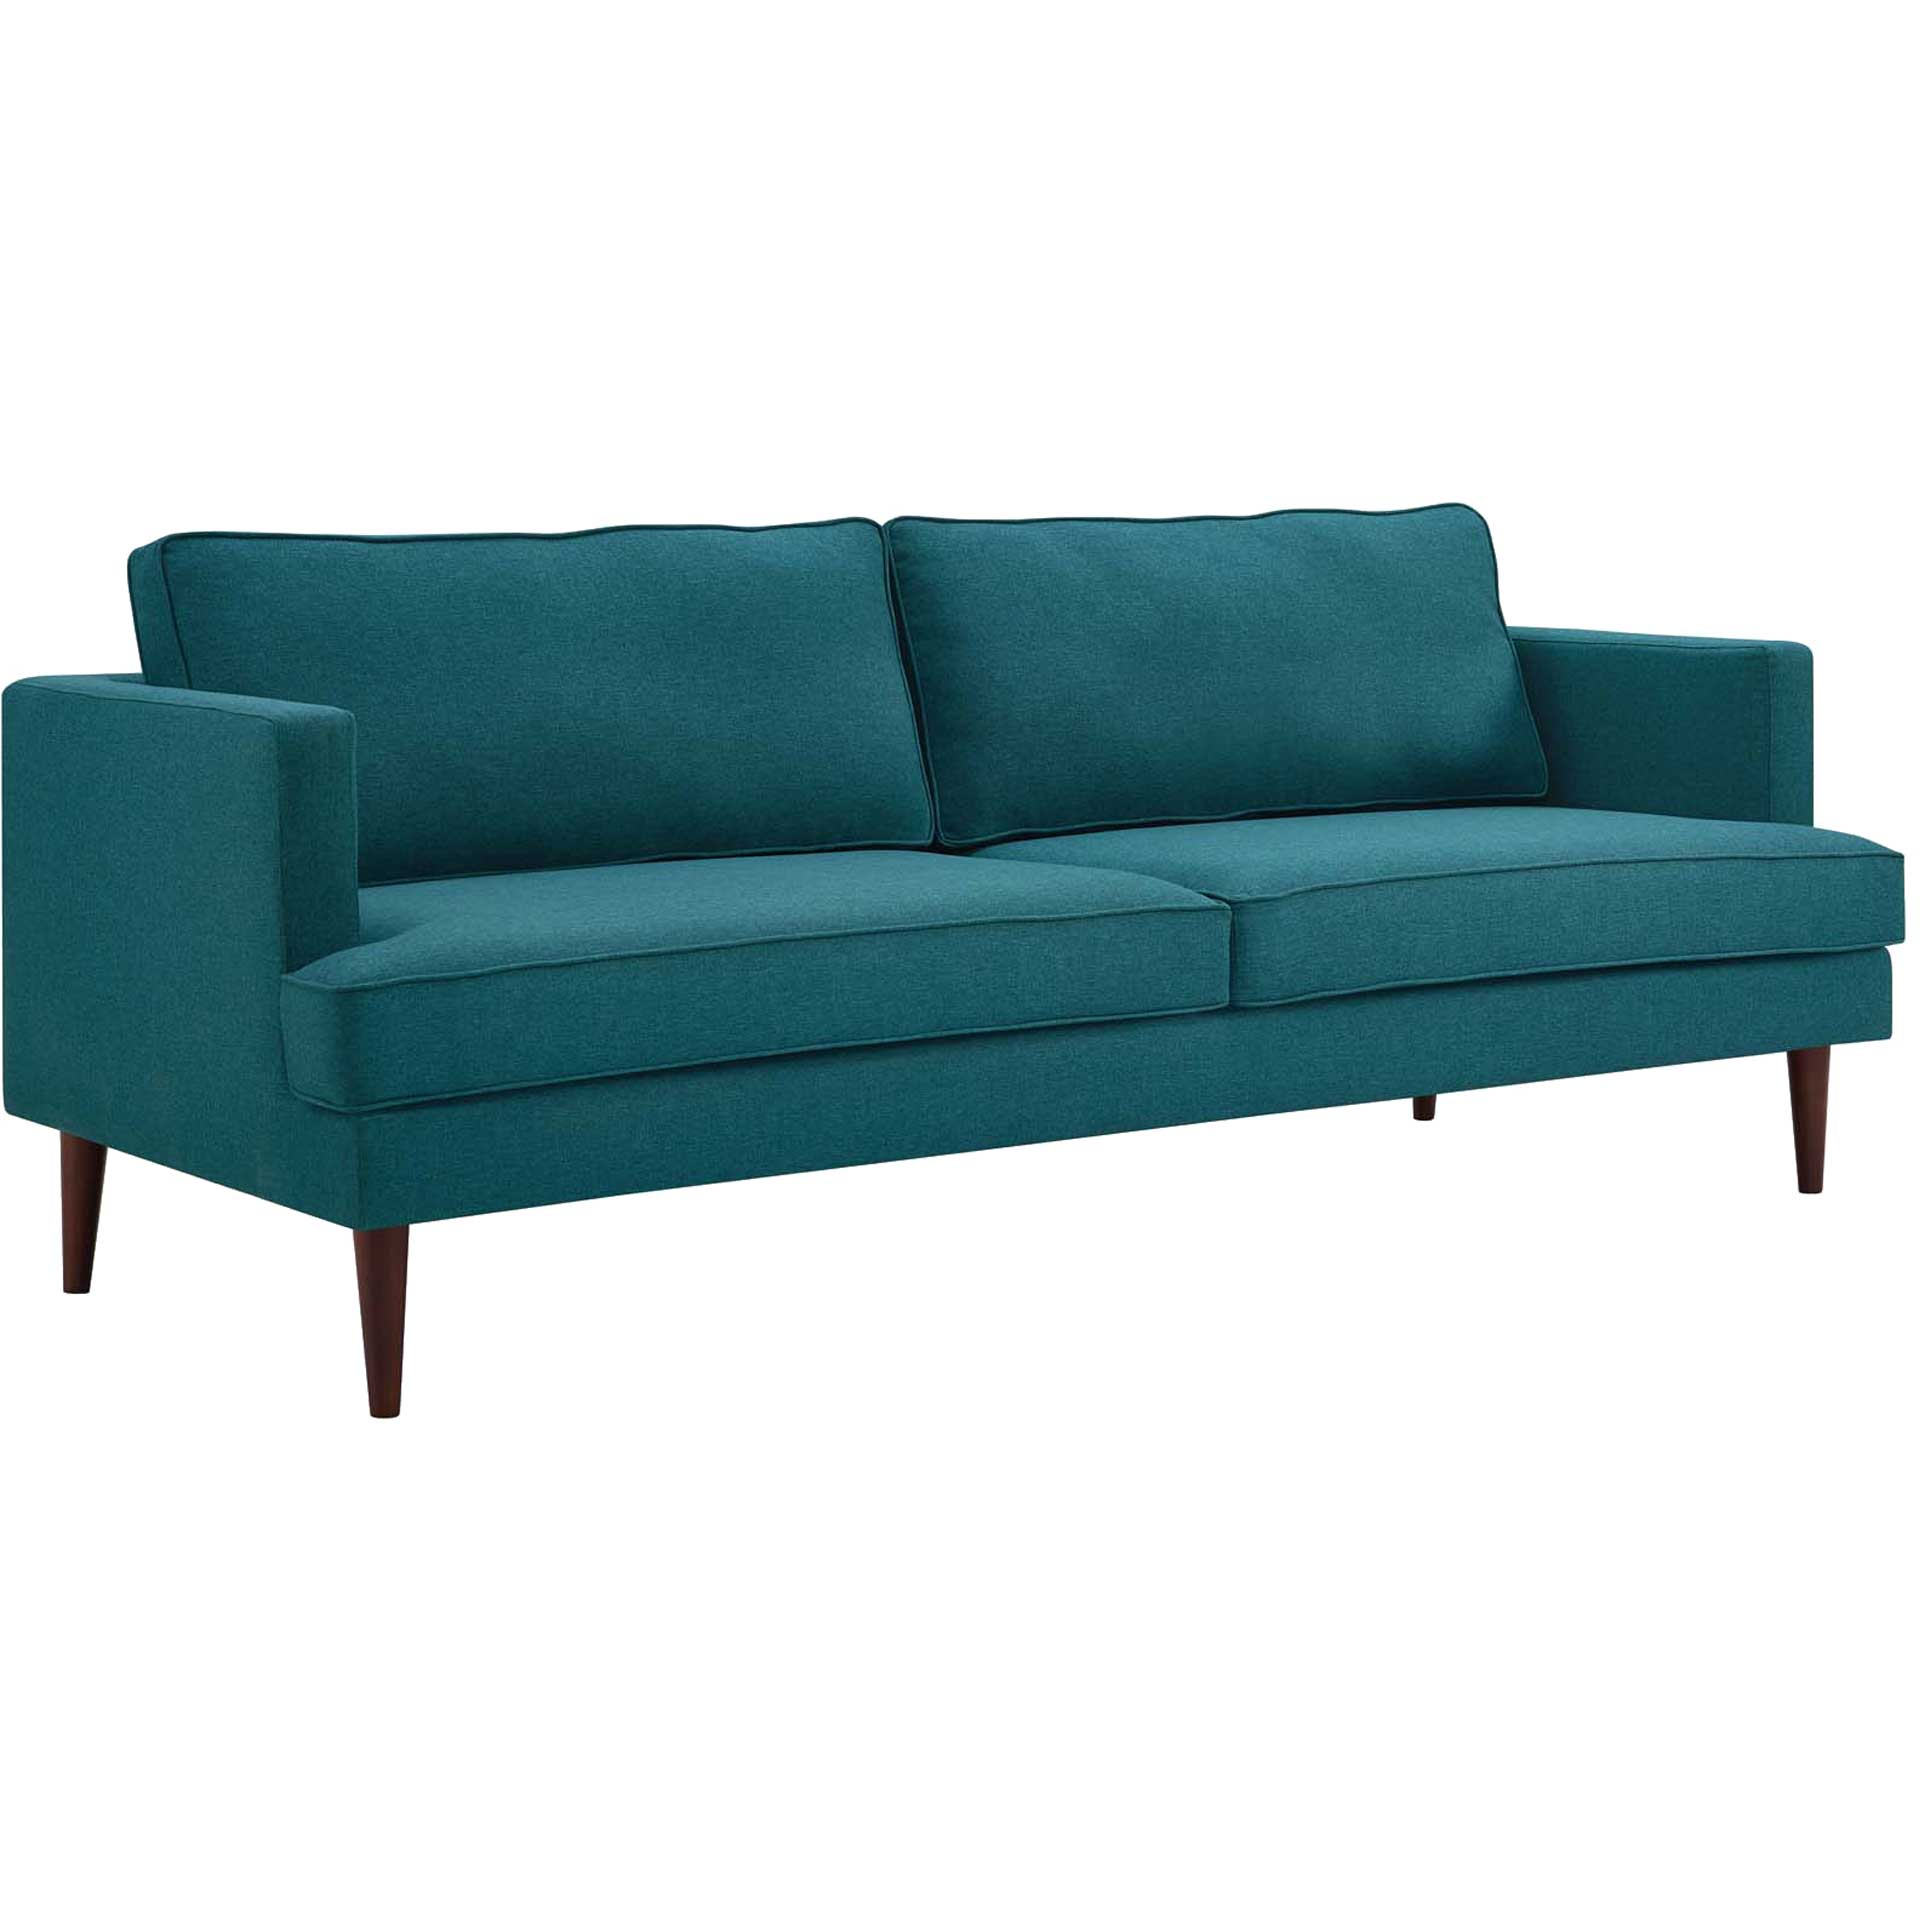 Aisley Upholstered Fabric Sofa Teal